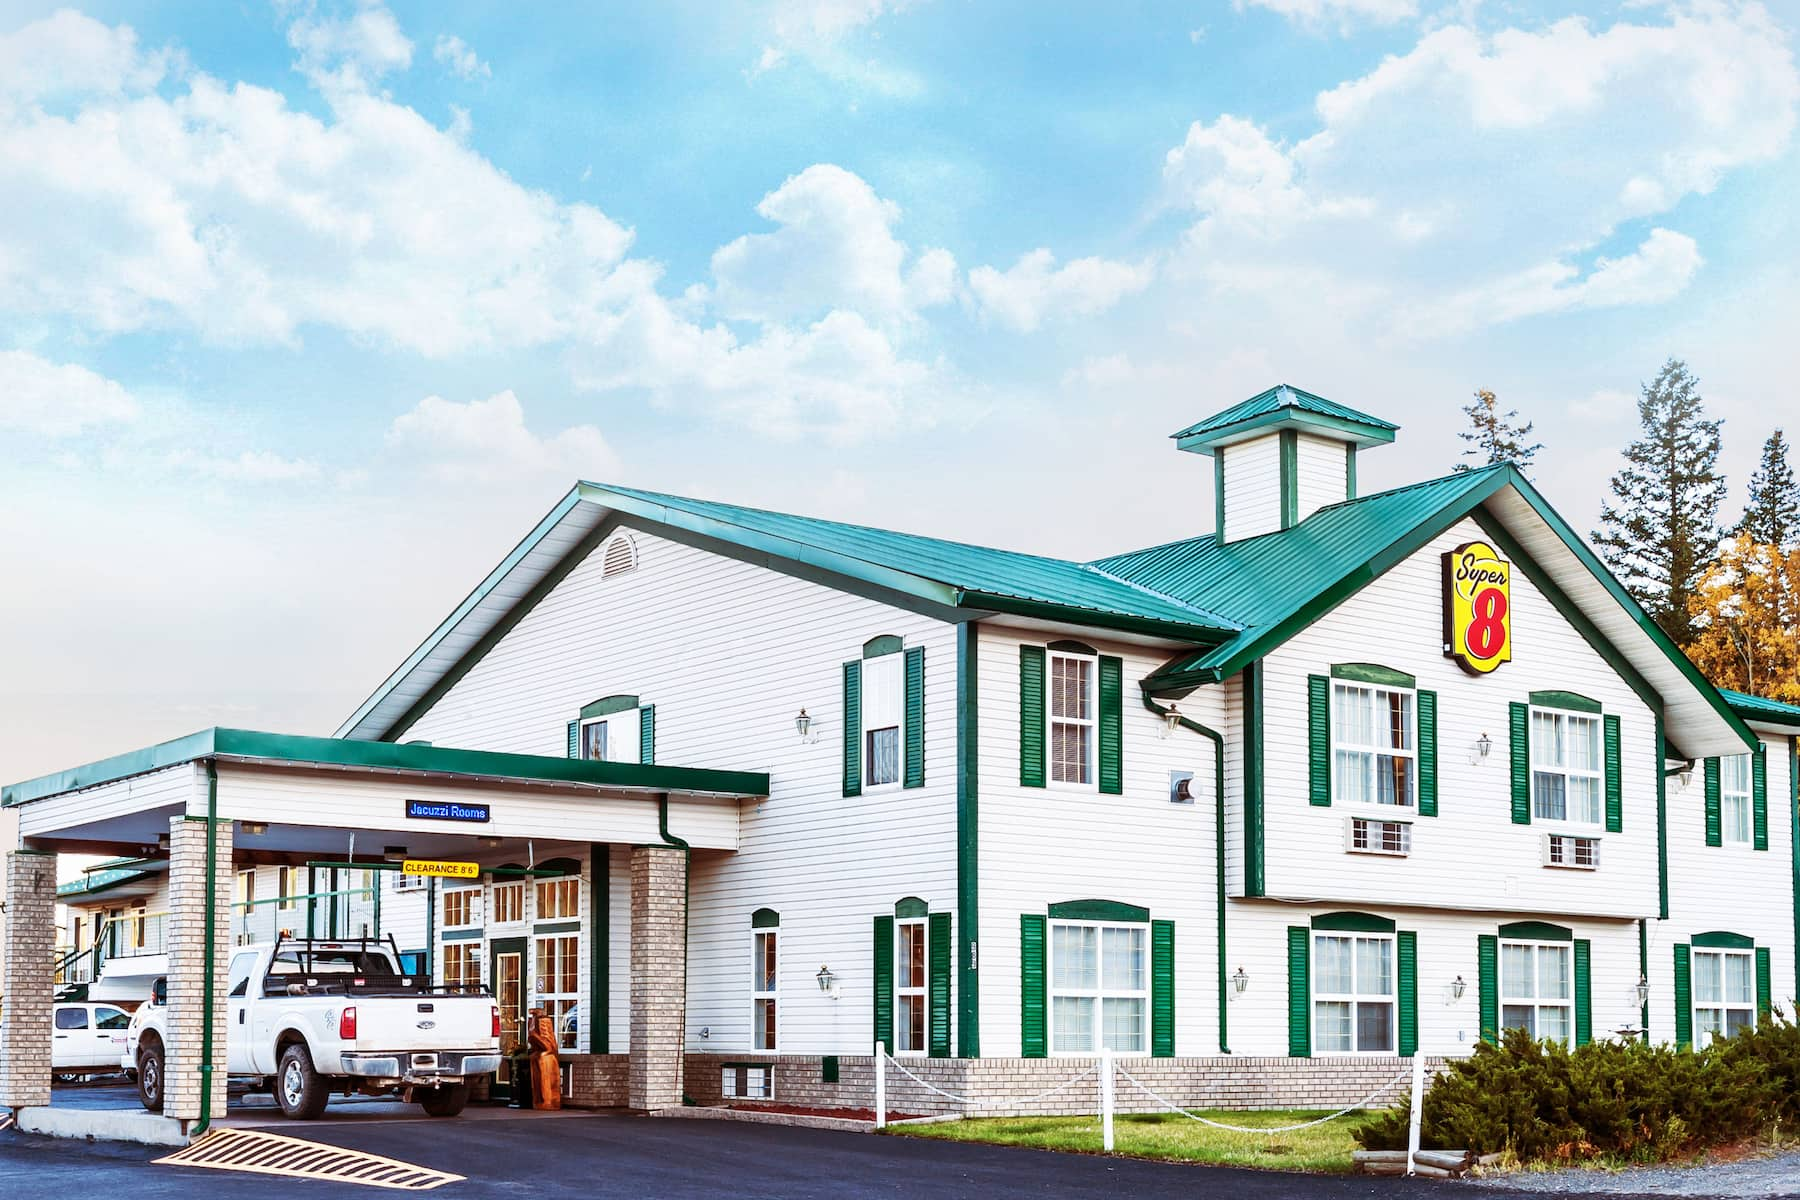 Super 8 by Wyndham 100 Mile House   100 Mile House, BC Hotels